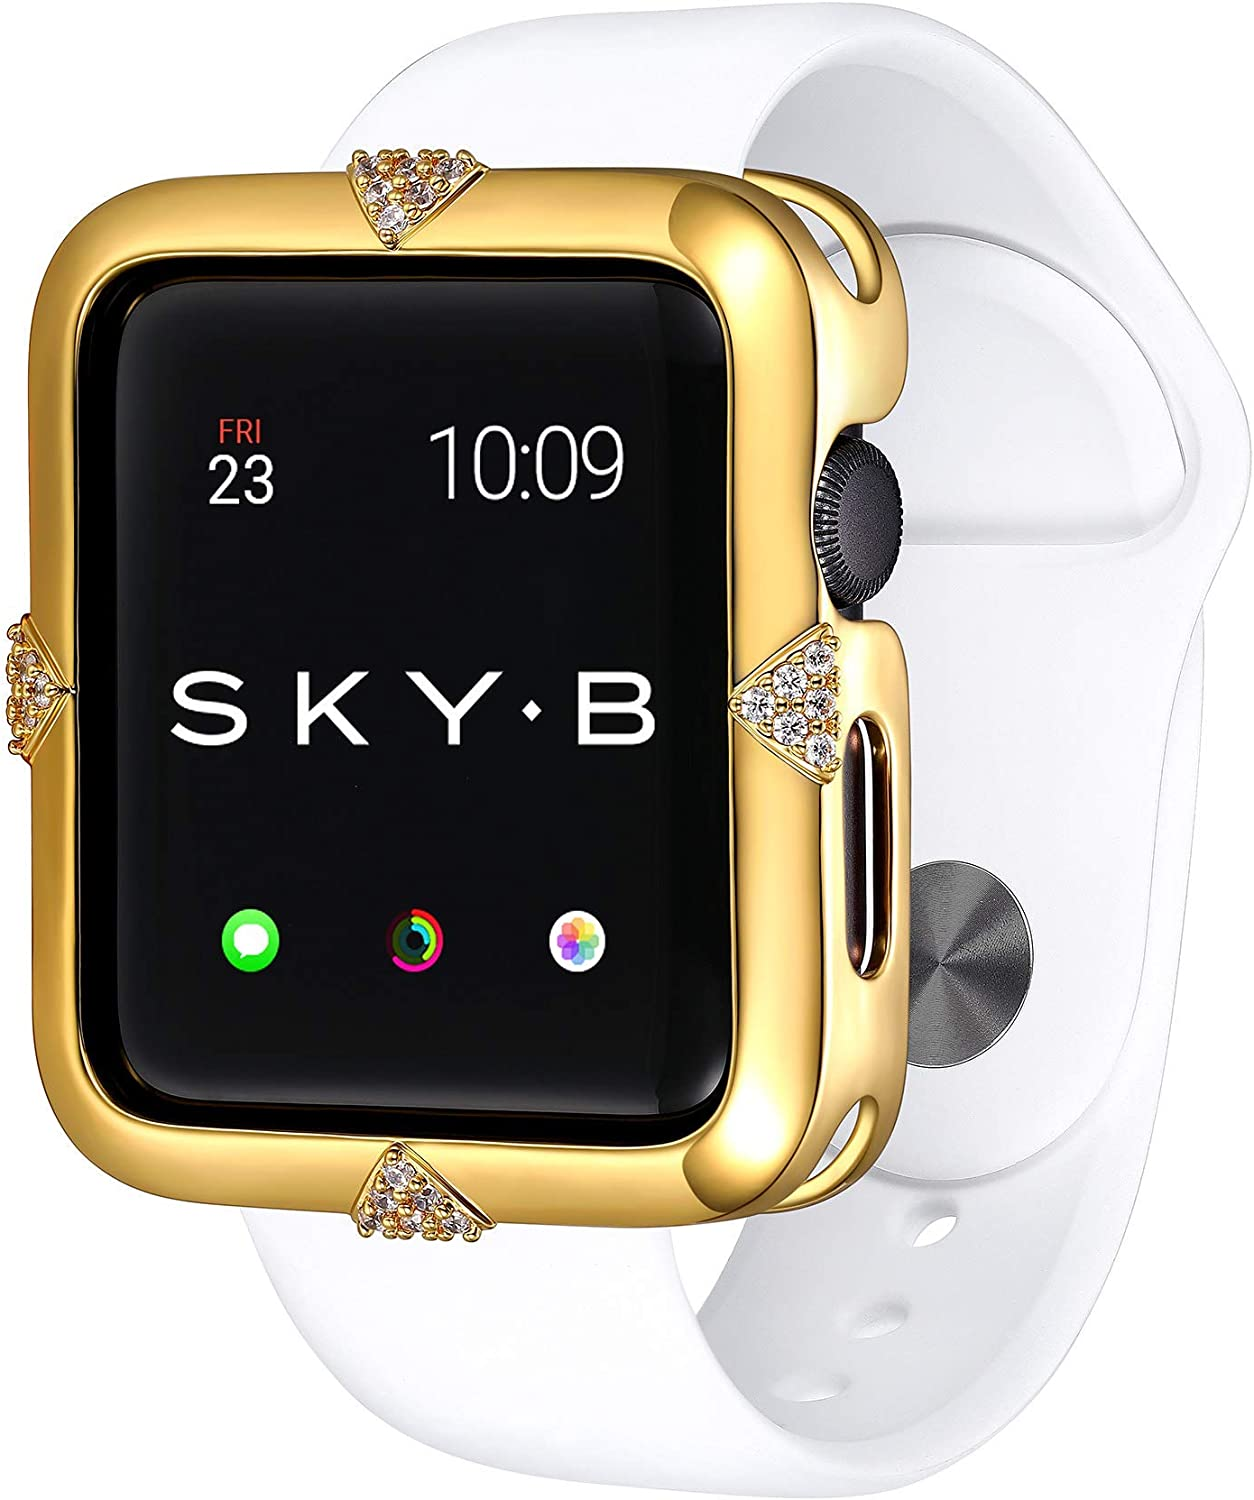 SKYB Pave Points Yellow Gold Protective Jewelry Case for Apple Watch Series 1, 2, 3, 4, 5 Devices - 40mm